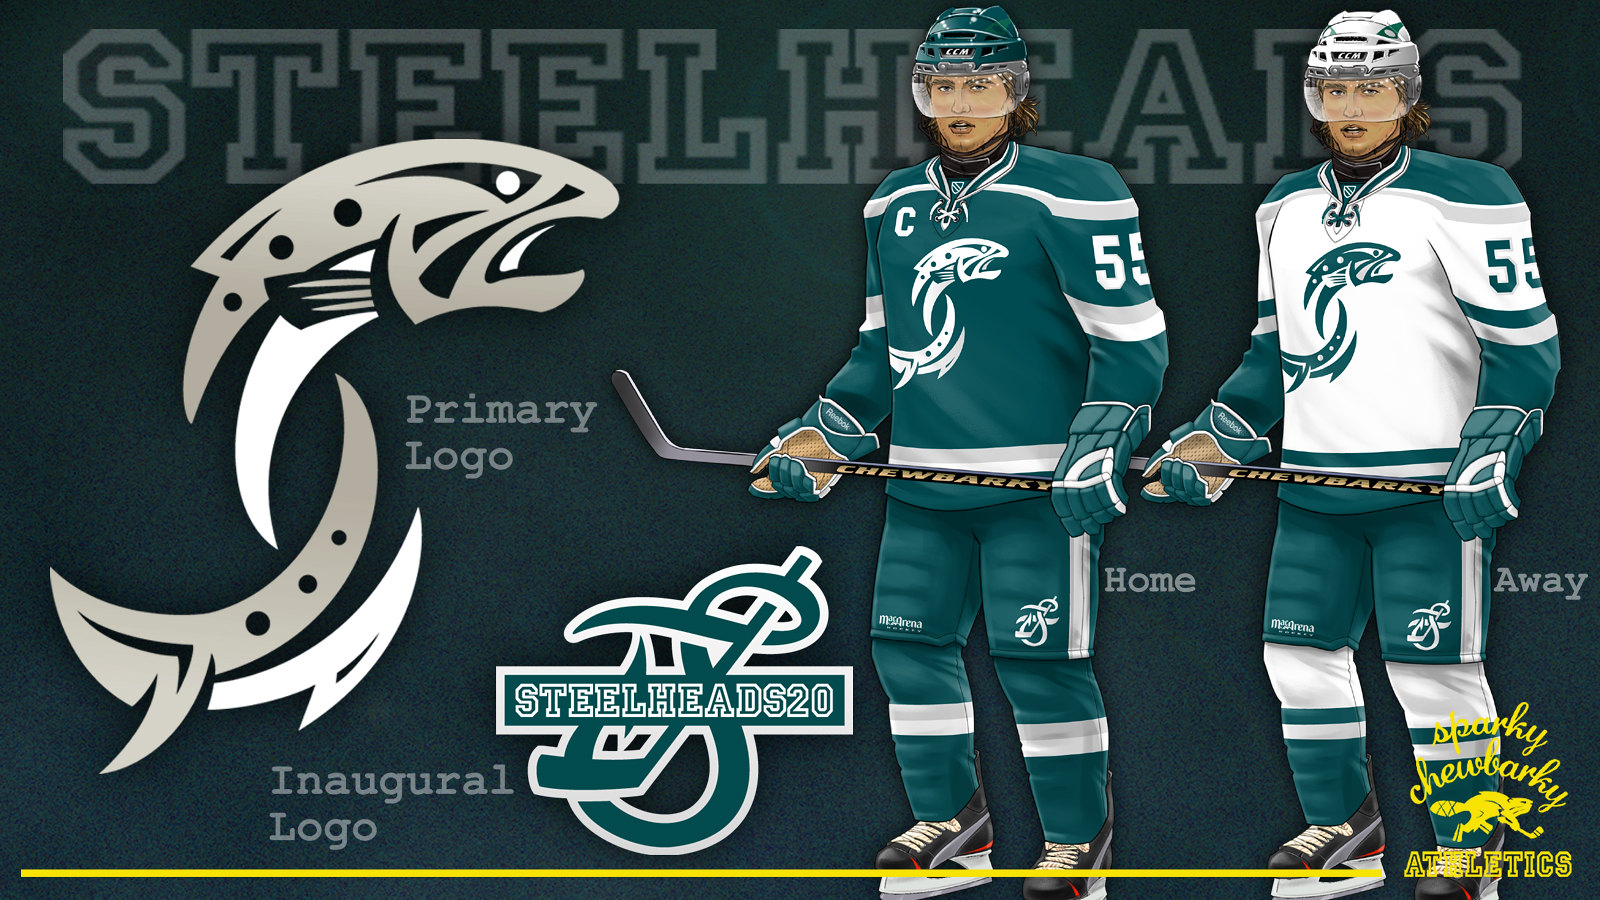 3092721e134 Brewster also submitted a bunch of non-video designs, most of which are  terrific. If you're curious, check out his concepts for the Seattle  Metropolitans, ...